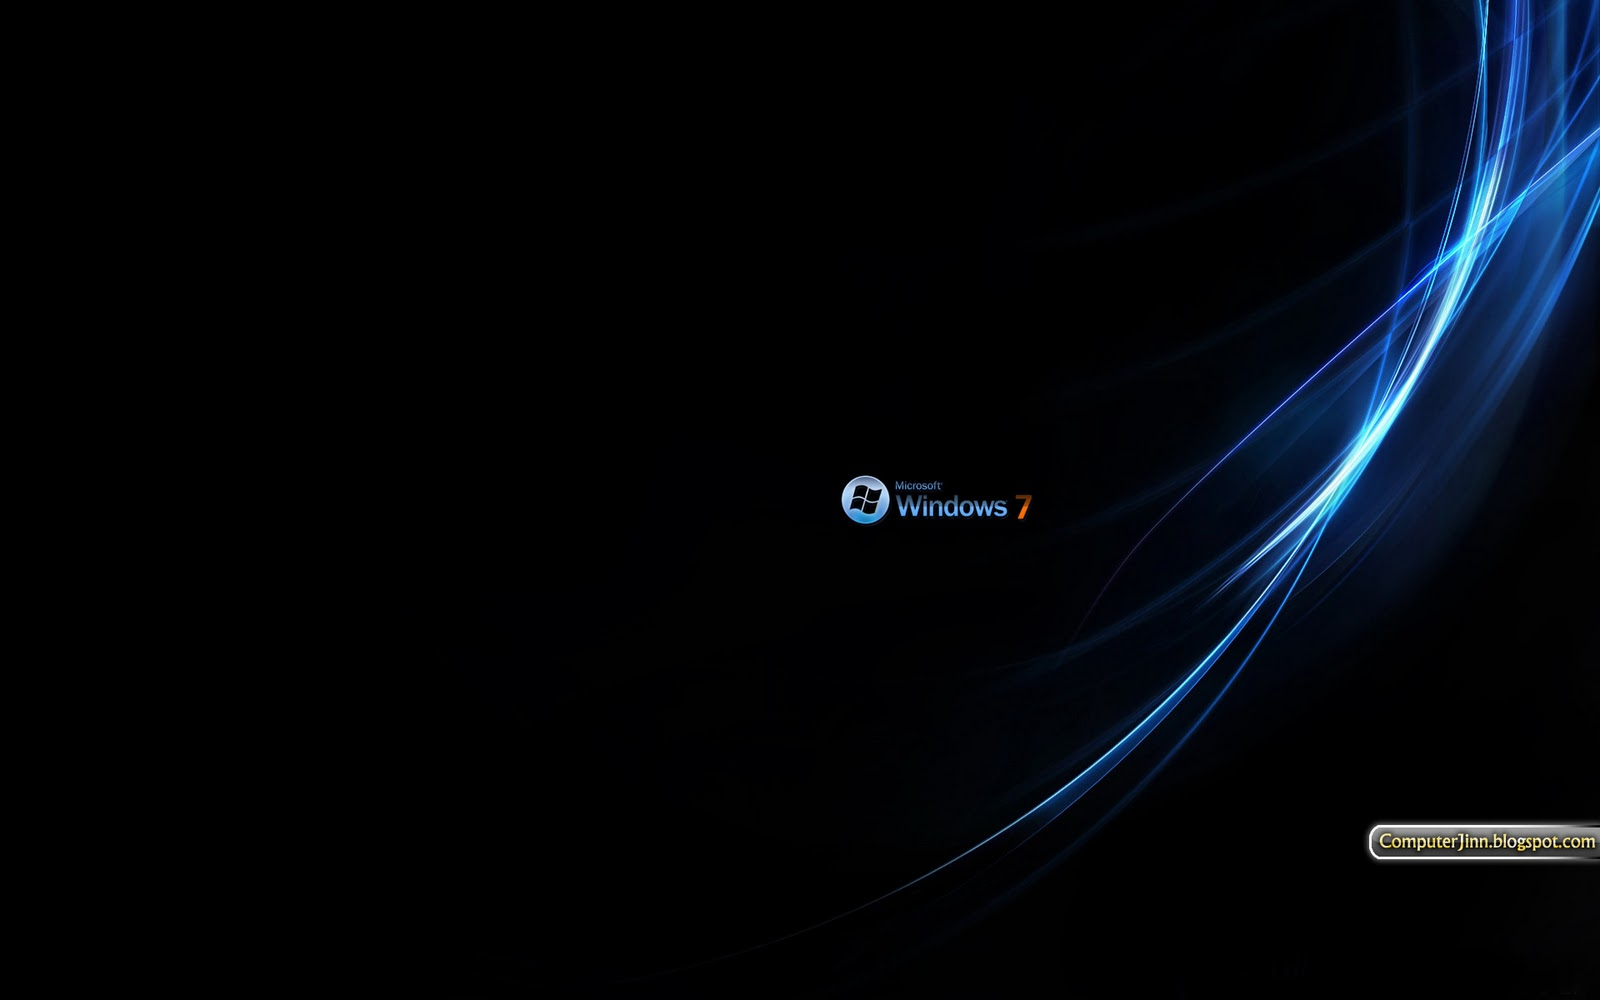 Windows 7 Black and Dark HD Wallpapers Click any image to enlarge it 1600x1000